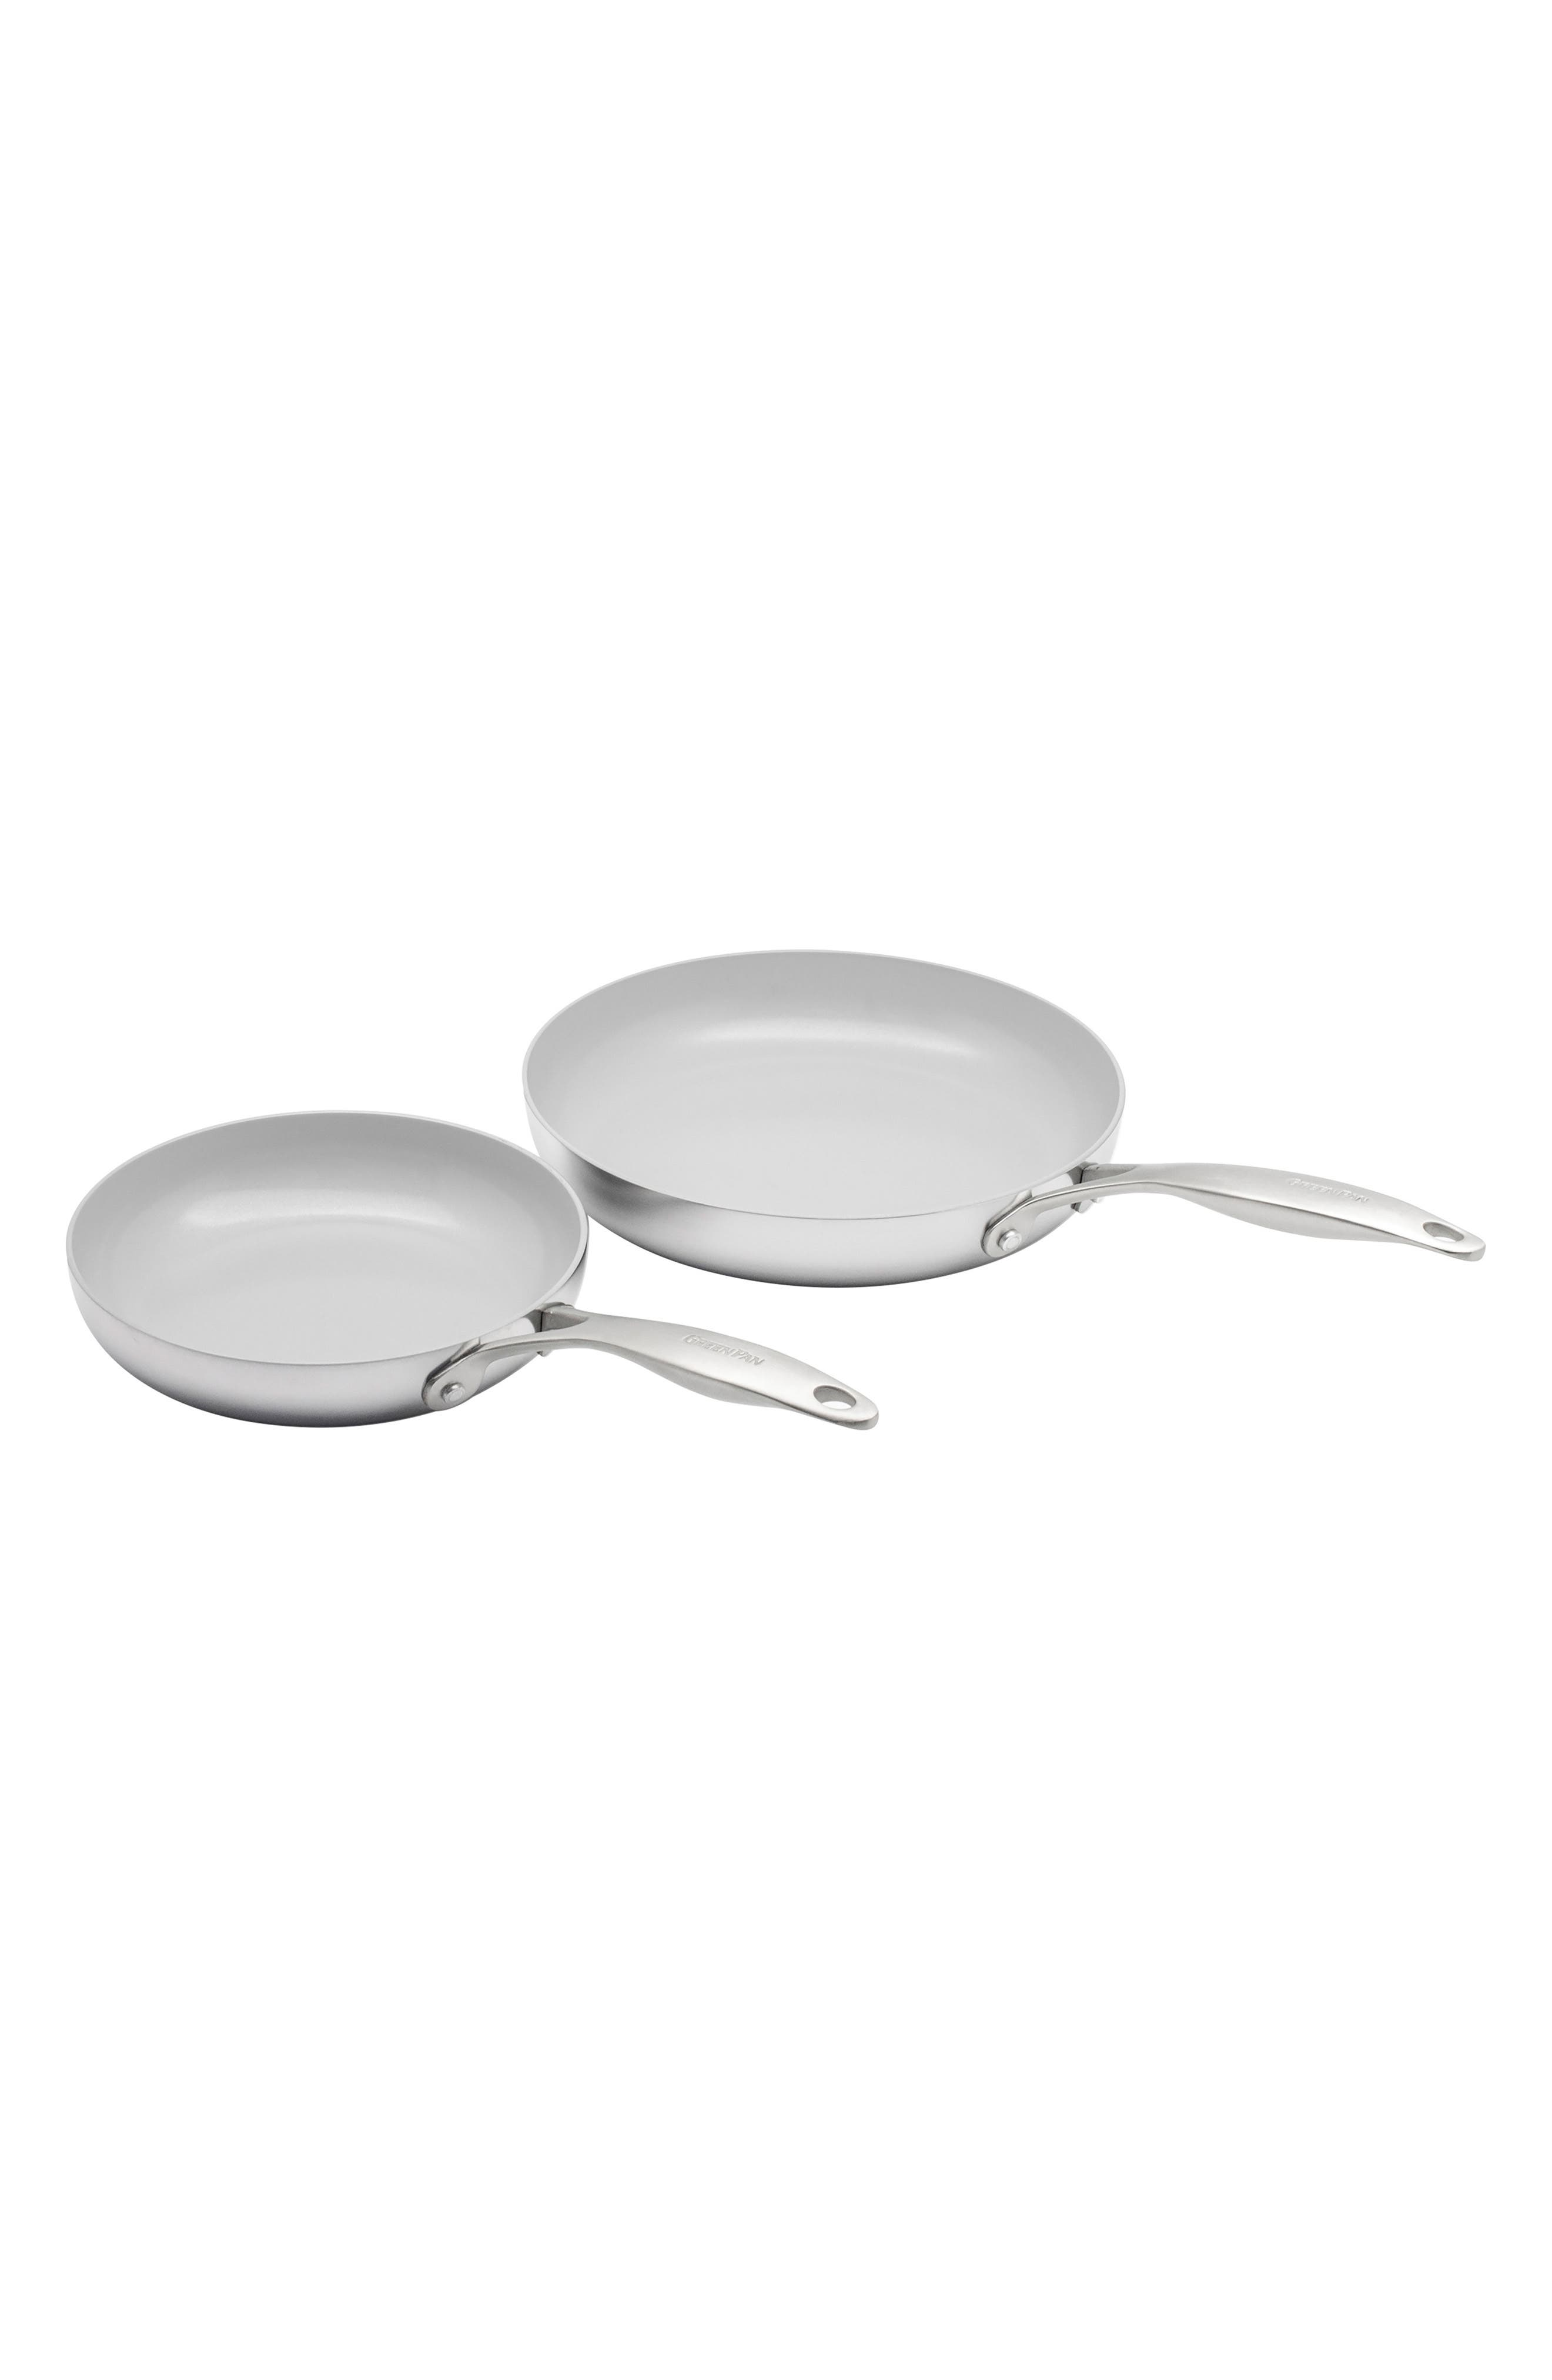 Venice Pro 8-Inch & 10-Inch Multilayer Stainless Steel Ceramic Nonstick Frying Pan Set,                         Main,                         color, 040